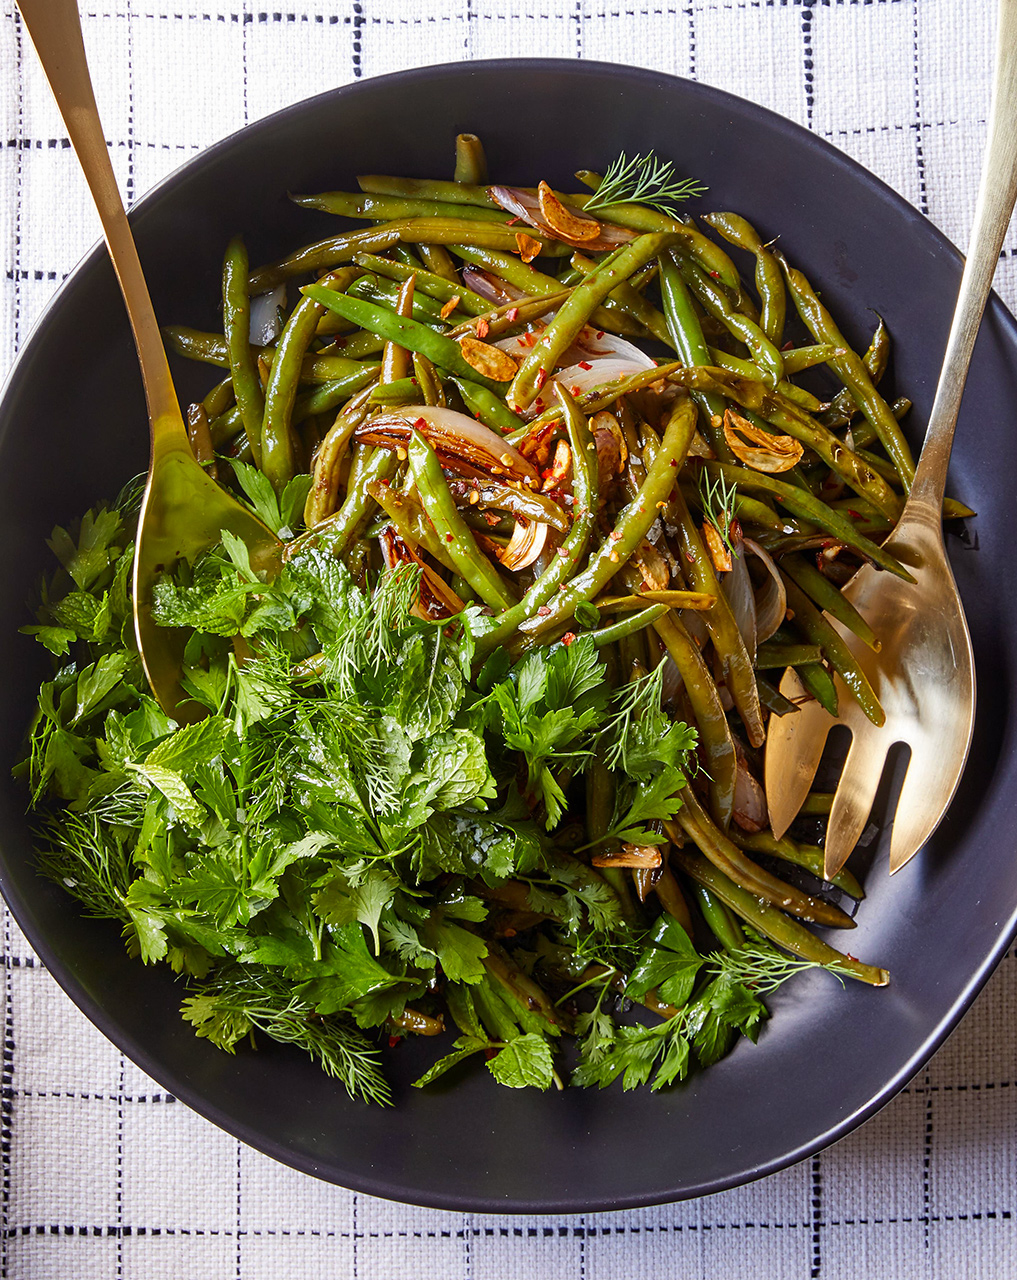 Spicy Green Beans with Herb Salad